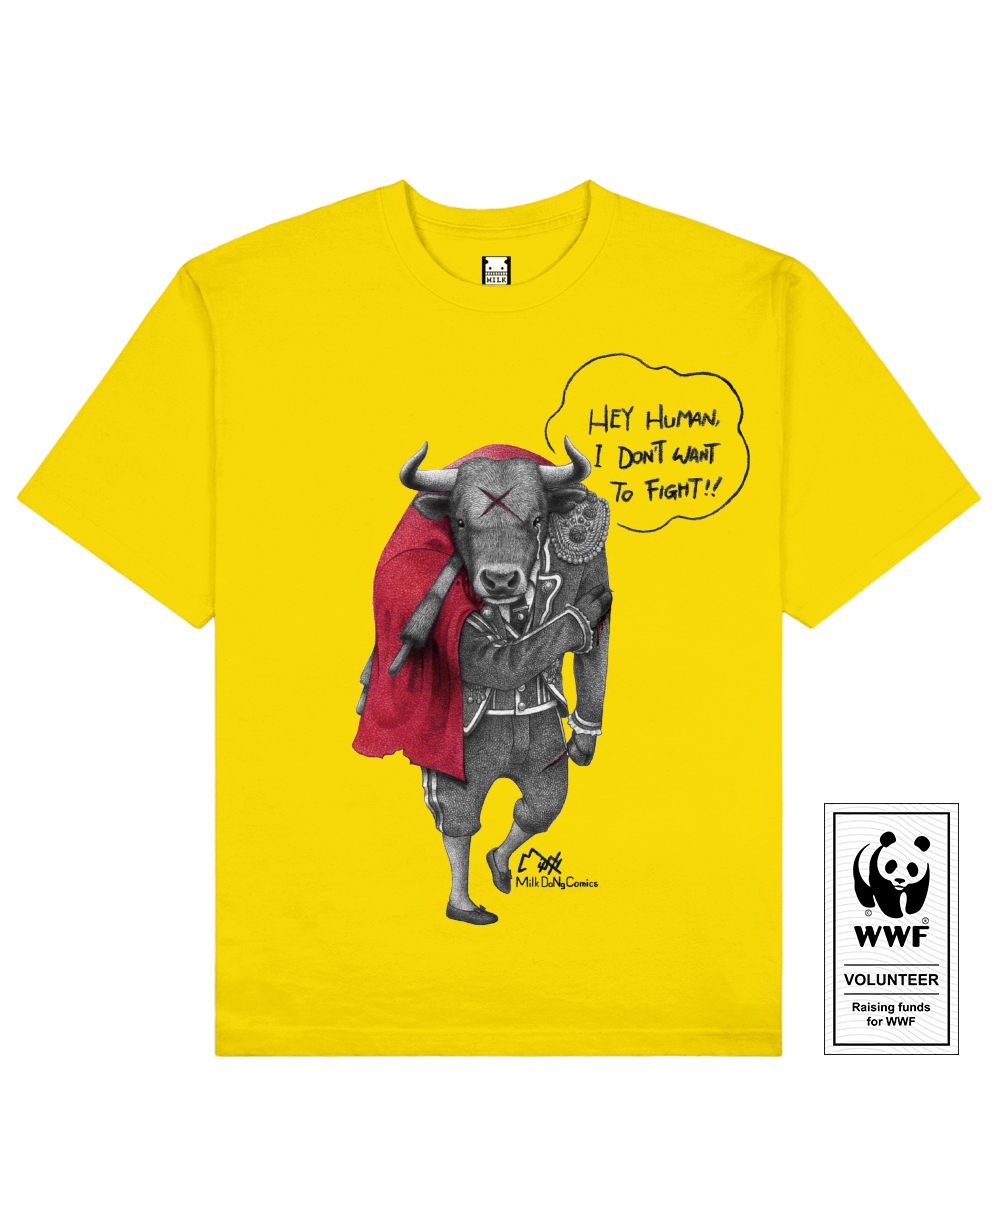 FIGHTING BULL Printed T-Shirt in Yellow - T-Shirts - Milk DoNg Comics - BRANMA